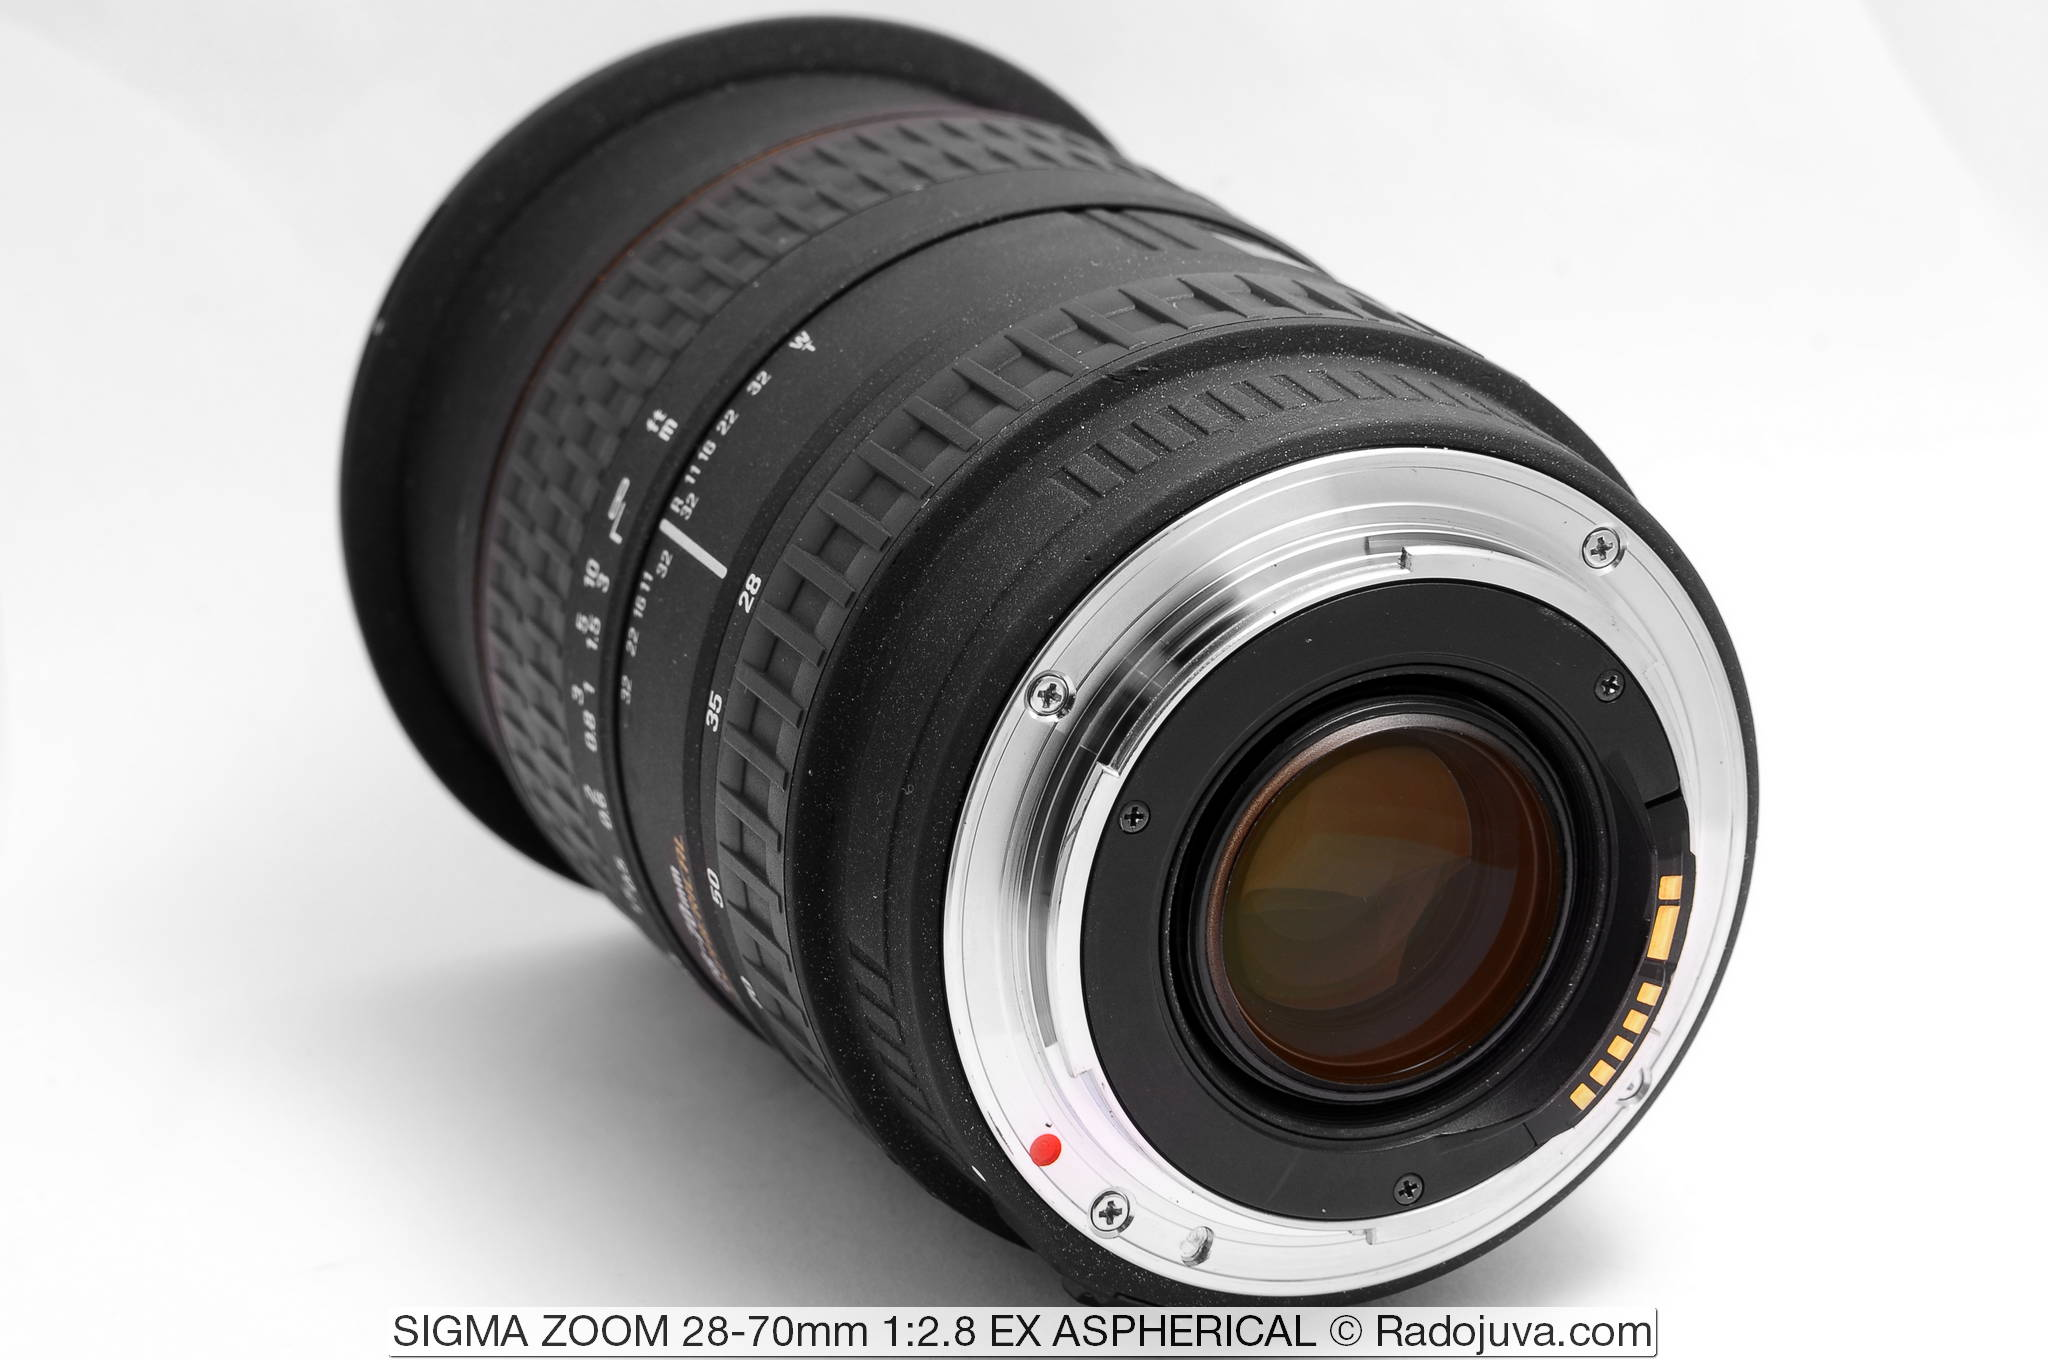 SIGMA ZOOM 28-70mm 1:2.8 EX ASPHERICAL